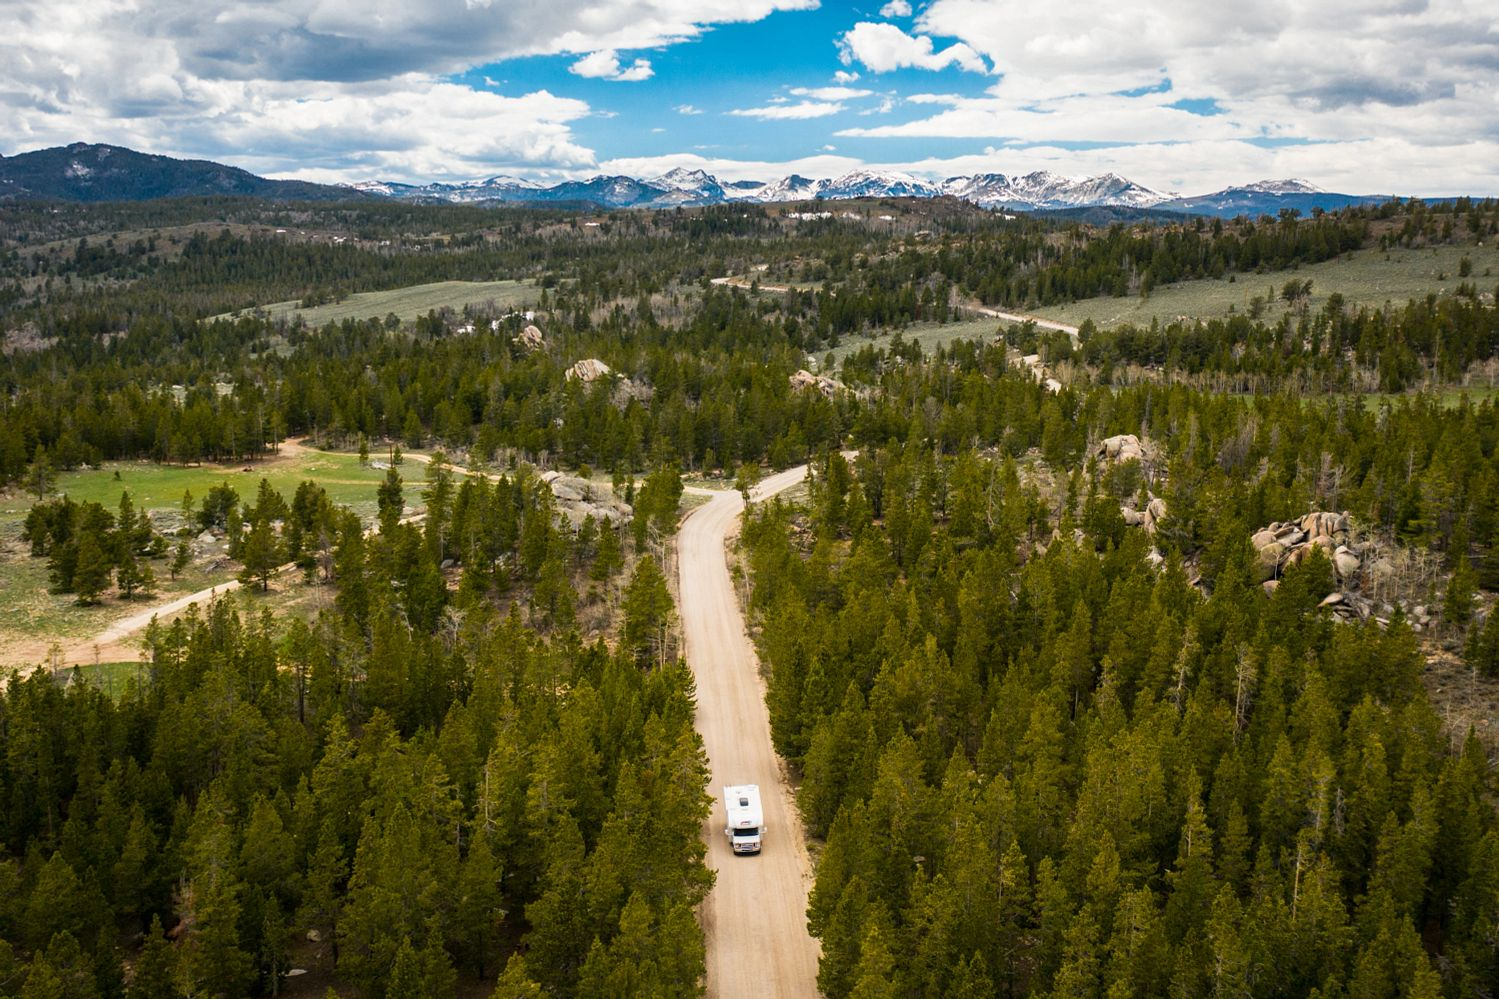 9 Tips for RVing in the Mountains